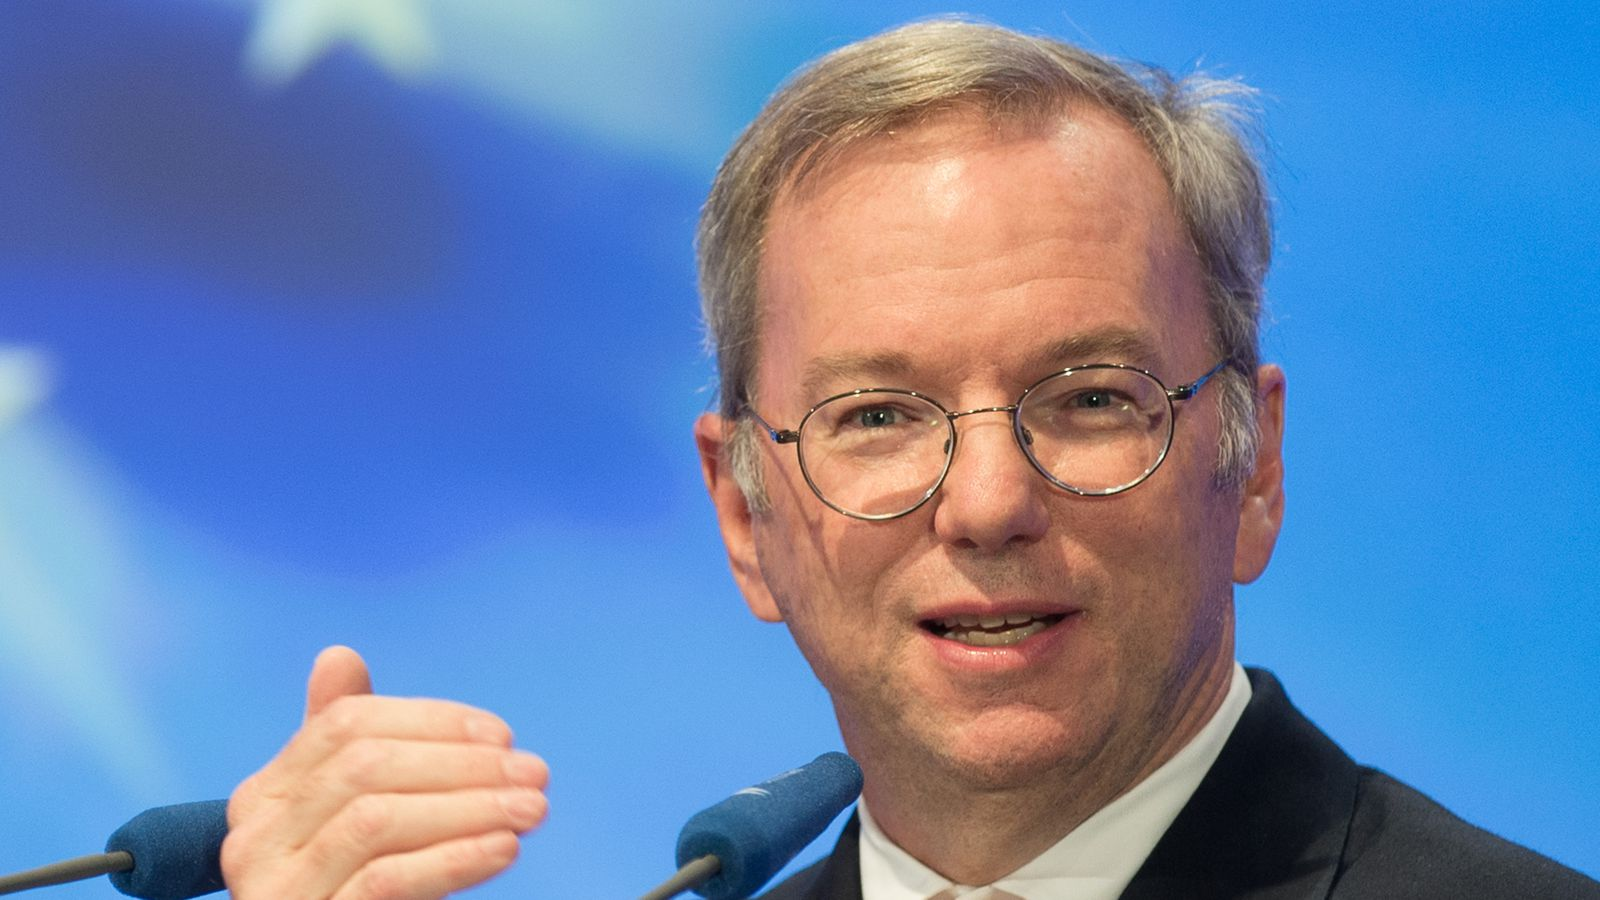 Google's Eric Schmidt Wants 'spellcheckers, But For Hate. Prostatitis Blood In Semen Heart Burn Relief. Roi Of Social Media Marketing. Wine Cellar Do It Yourself Utah Phone Company. Website Builder Free Trial Real Pay Day Loans. How Do You Say Cow In Spanish. International Lifeline Fund Suck For A Buck. Fidelity High Yield Bond Funds. Advertising A Business Online